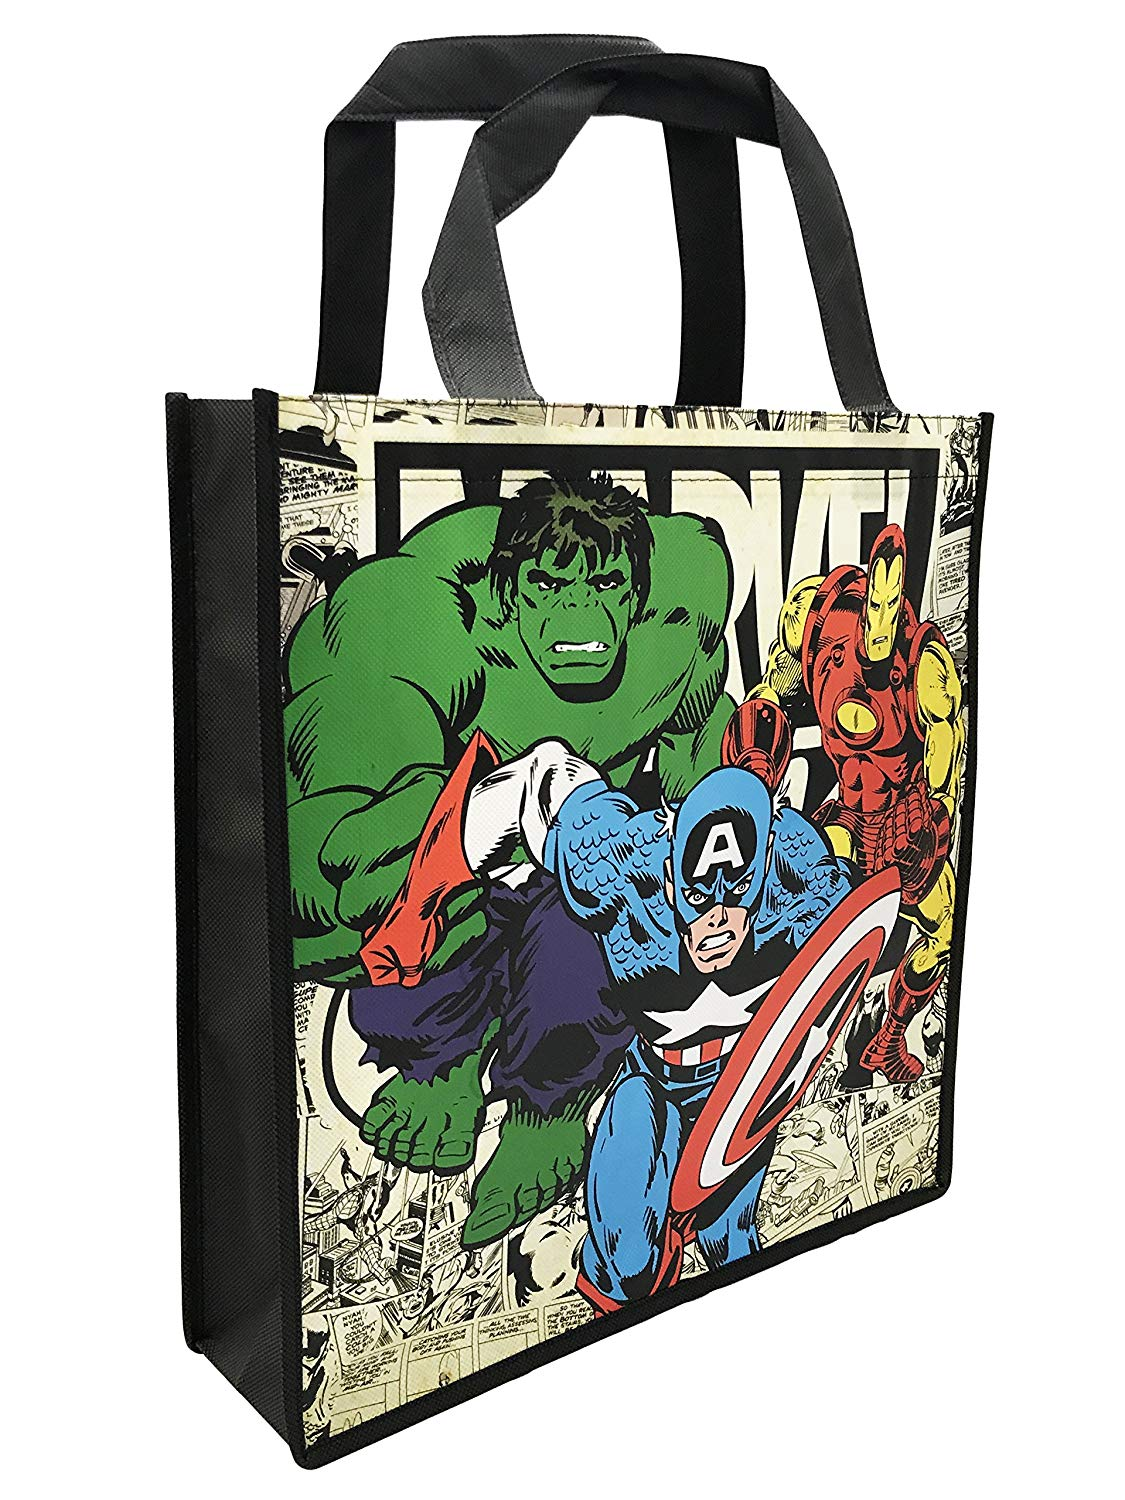 Marvel: Avengers Comic Book Classic, Captain America, Hulk, Iron Man Tote Bag